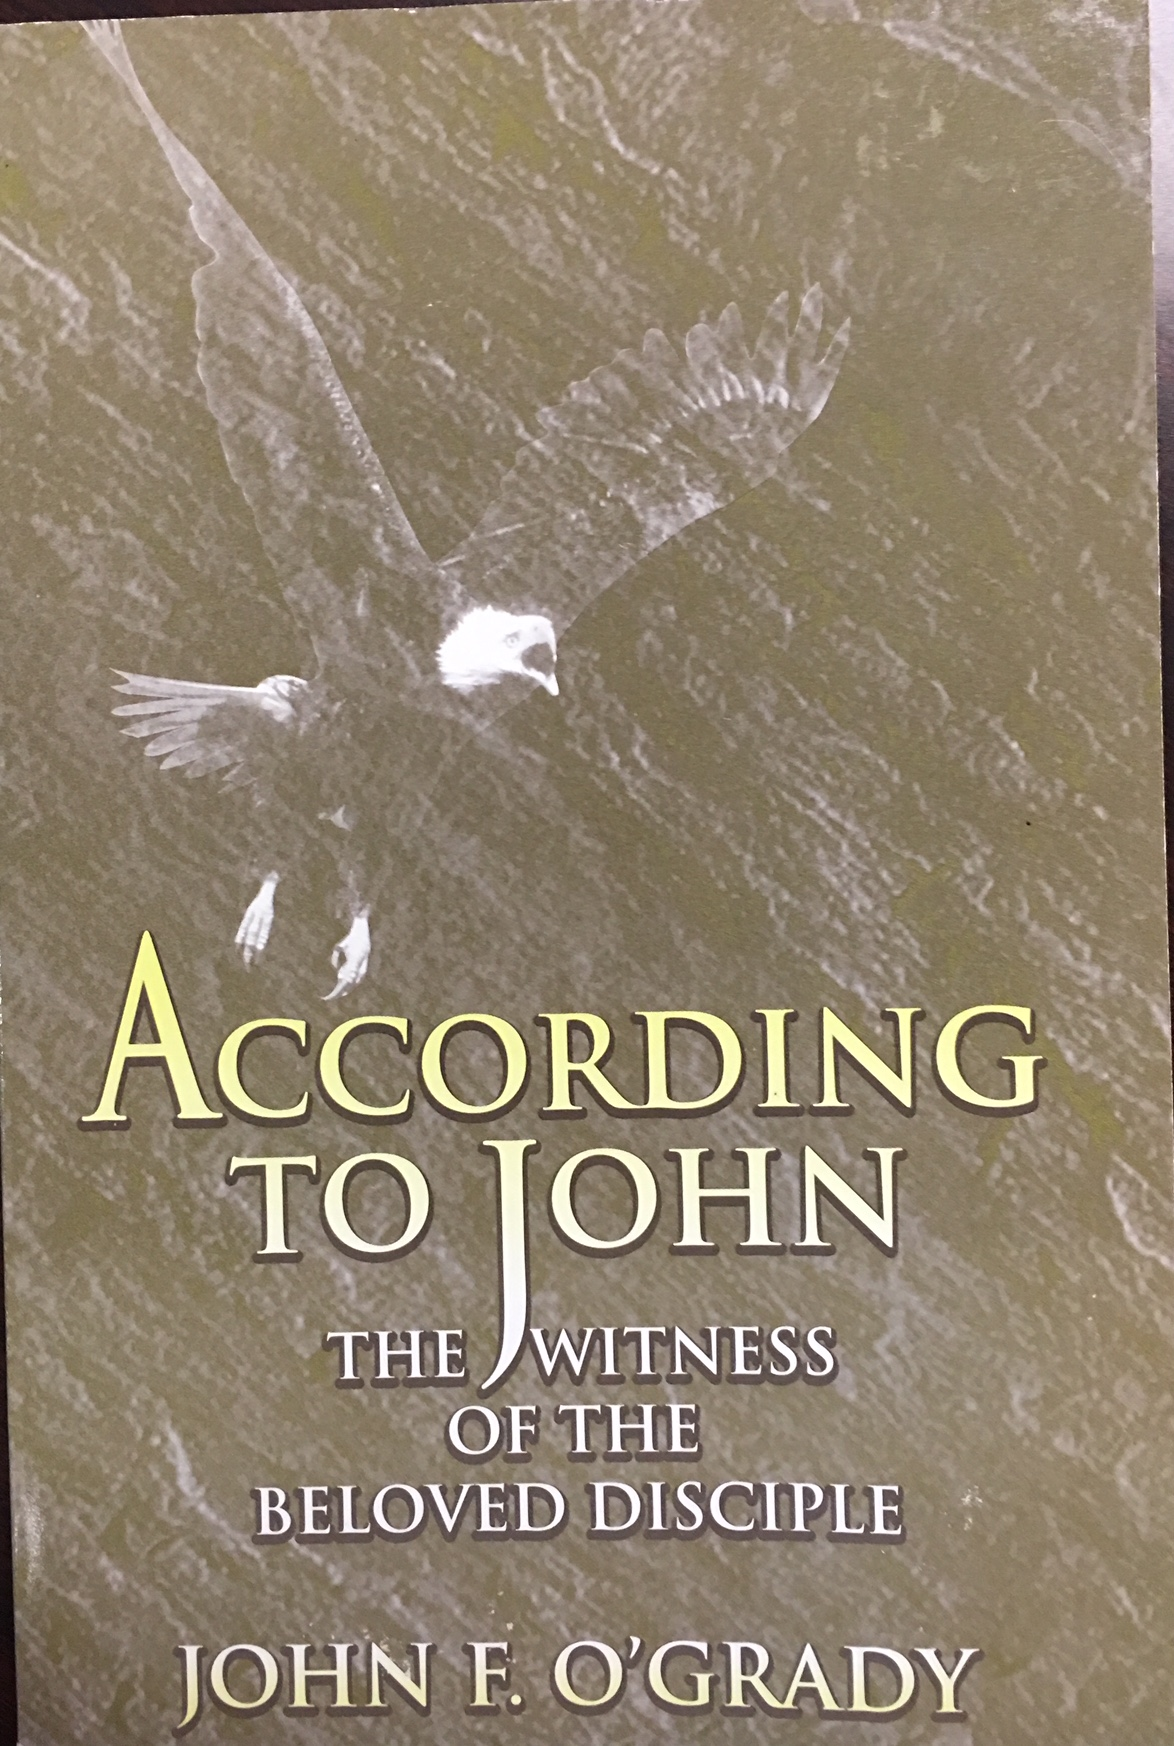 Image for According to John: The Witness of the Beloved Disciple